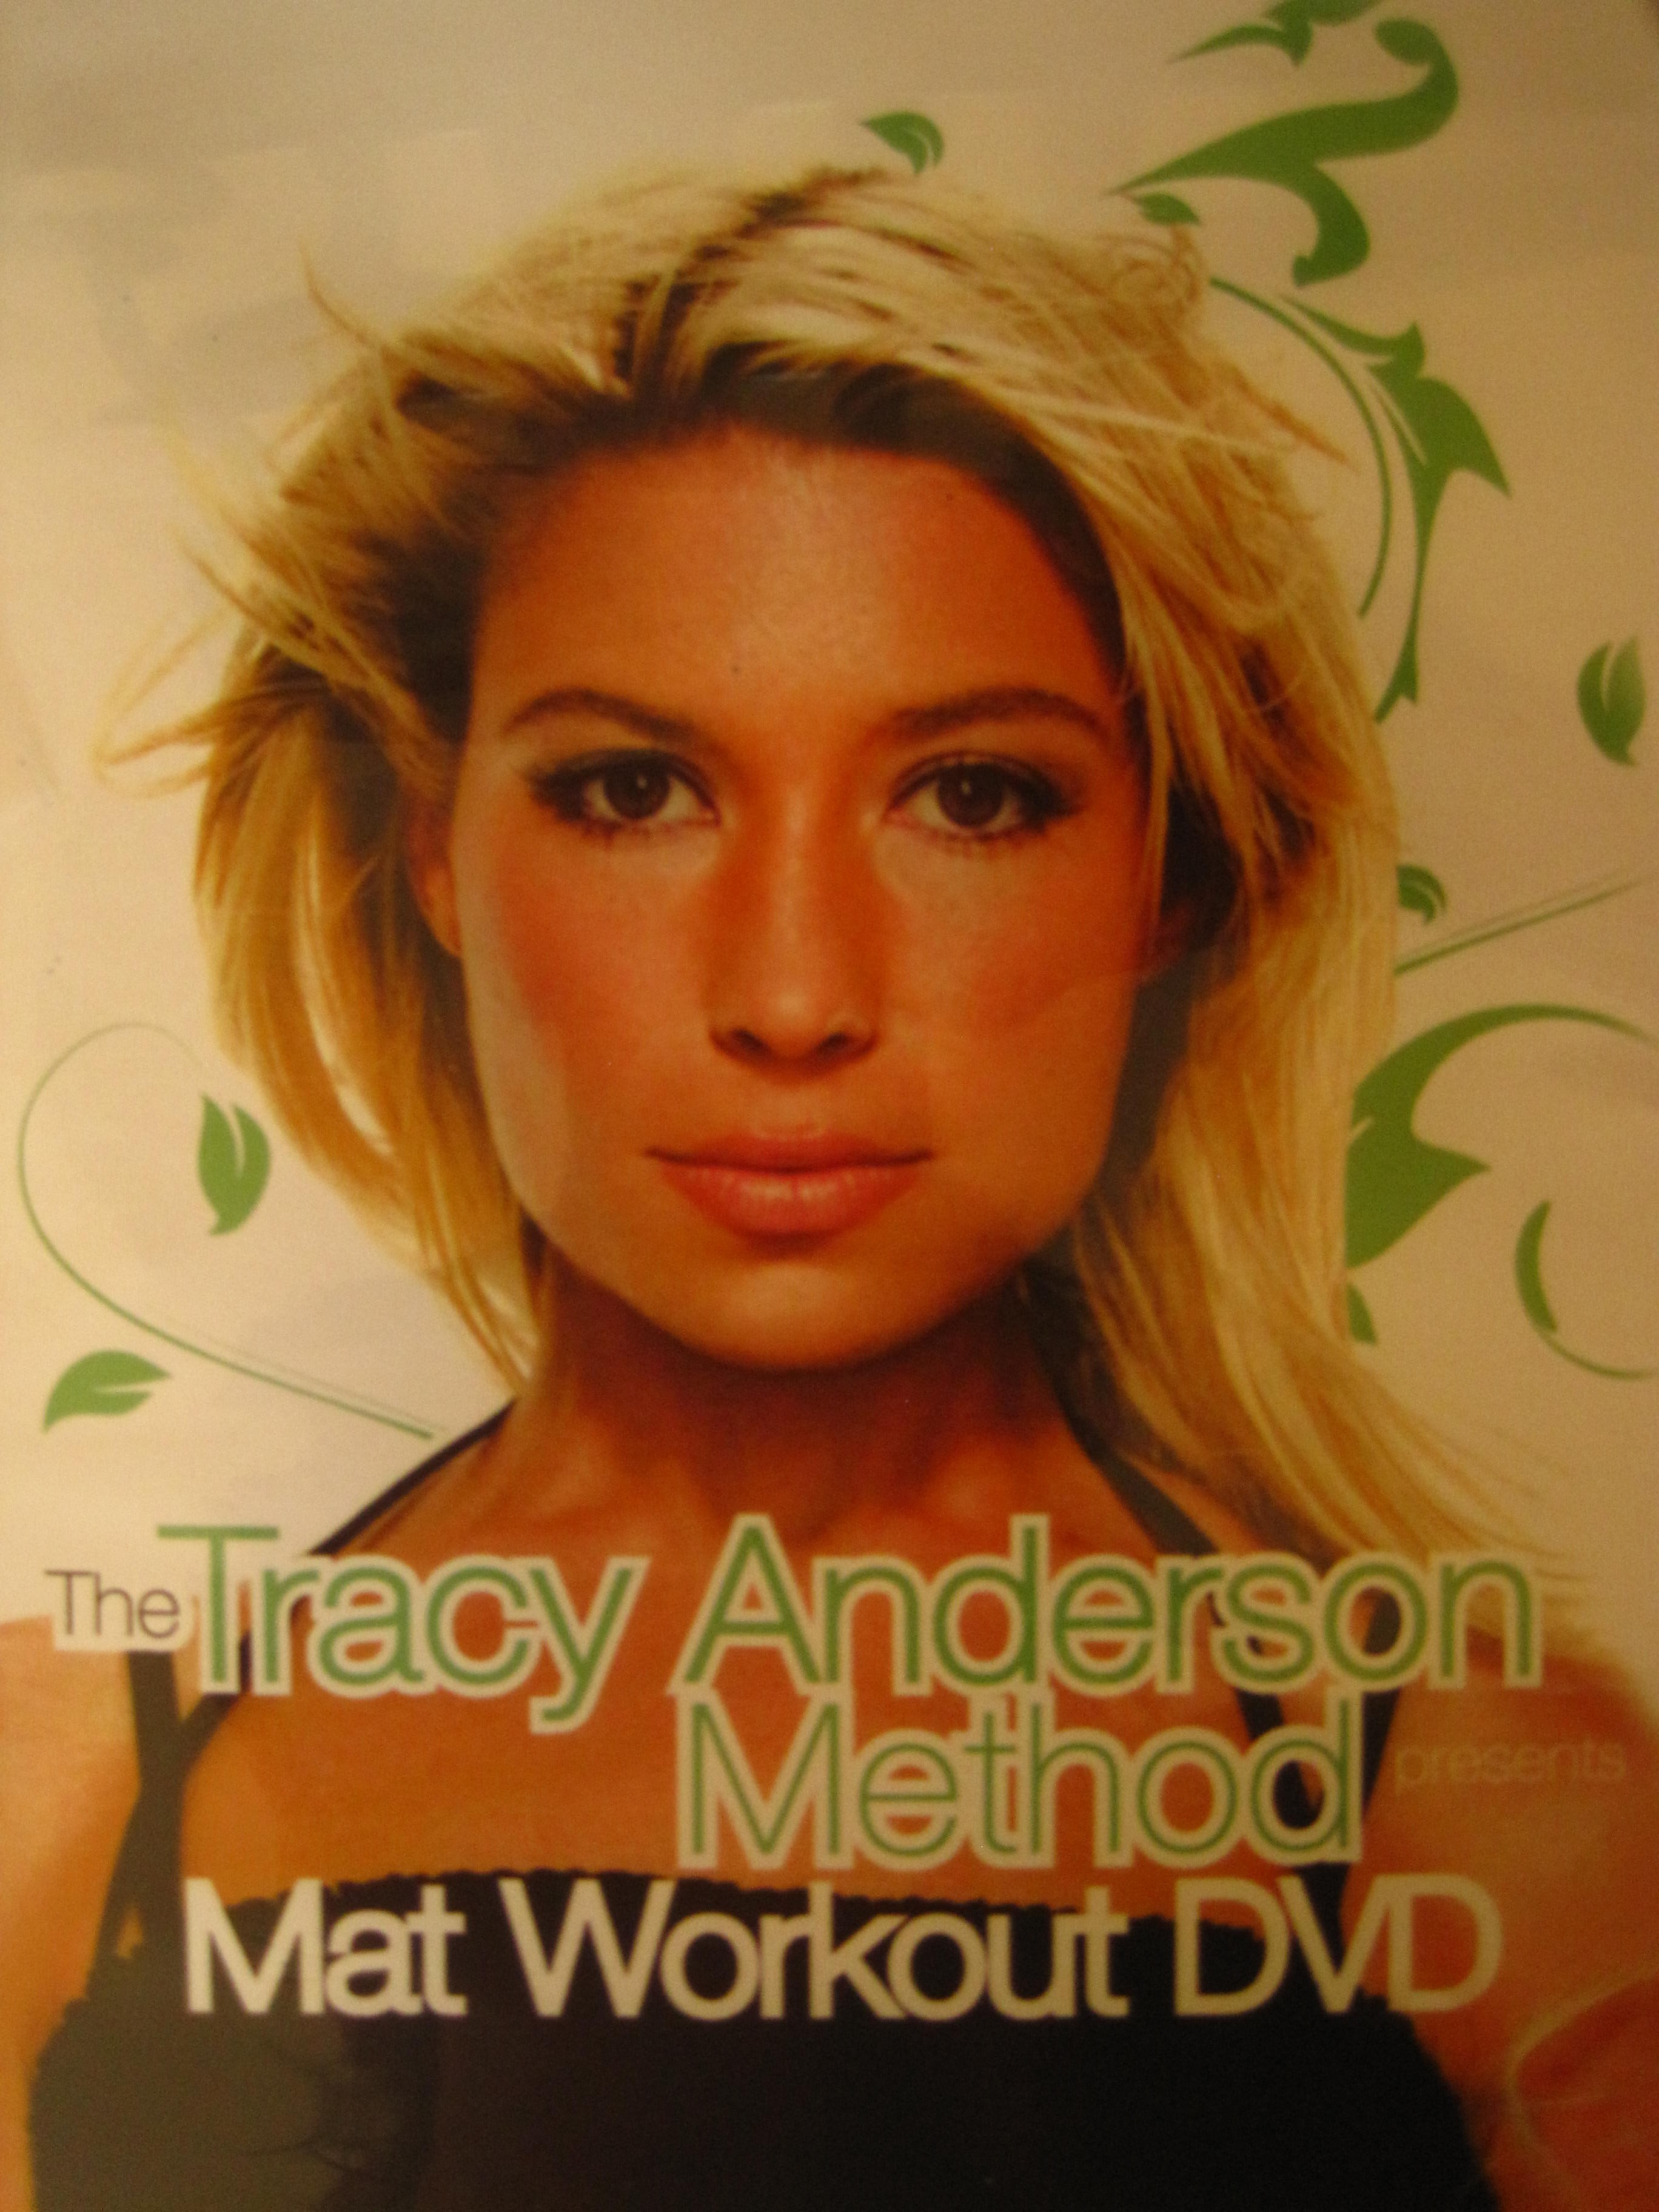 Celebrity trainer Tracy Anderson's mat workout DVD, my honest opinion